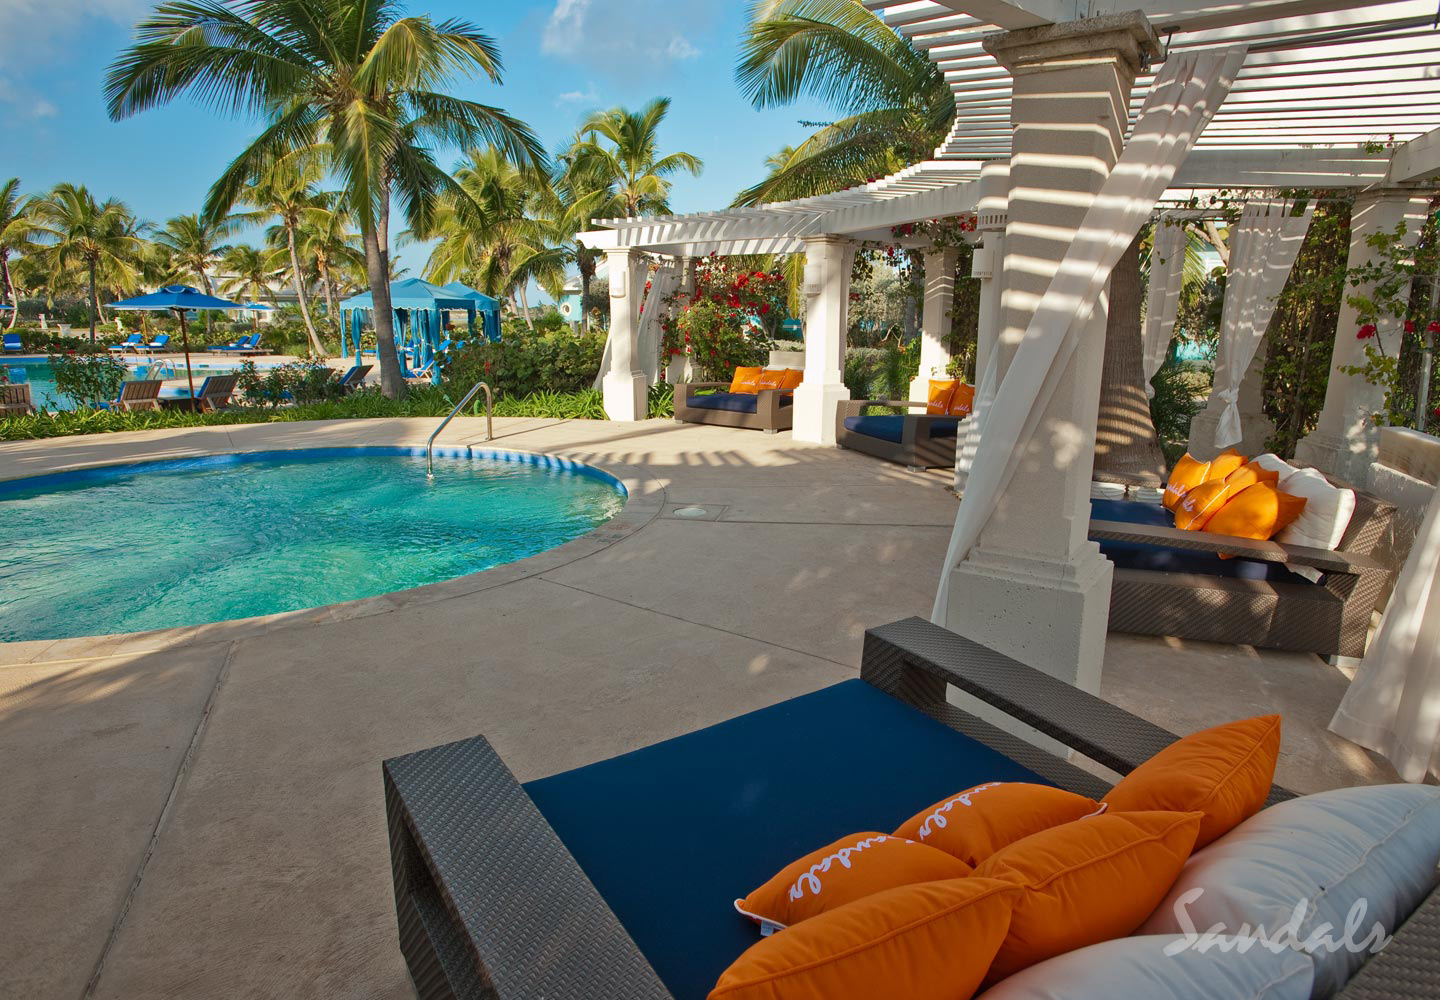 Travel Agency All-Inclusive Resort Sandals Emerald Bay 072